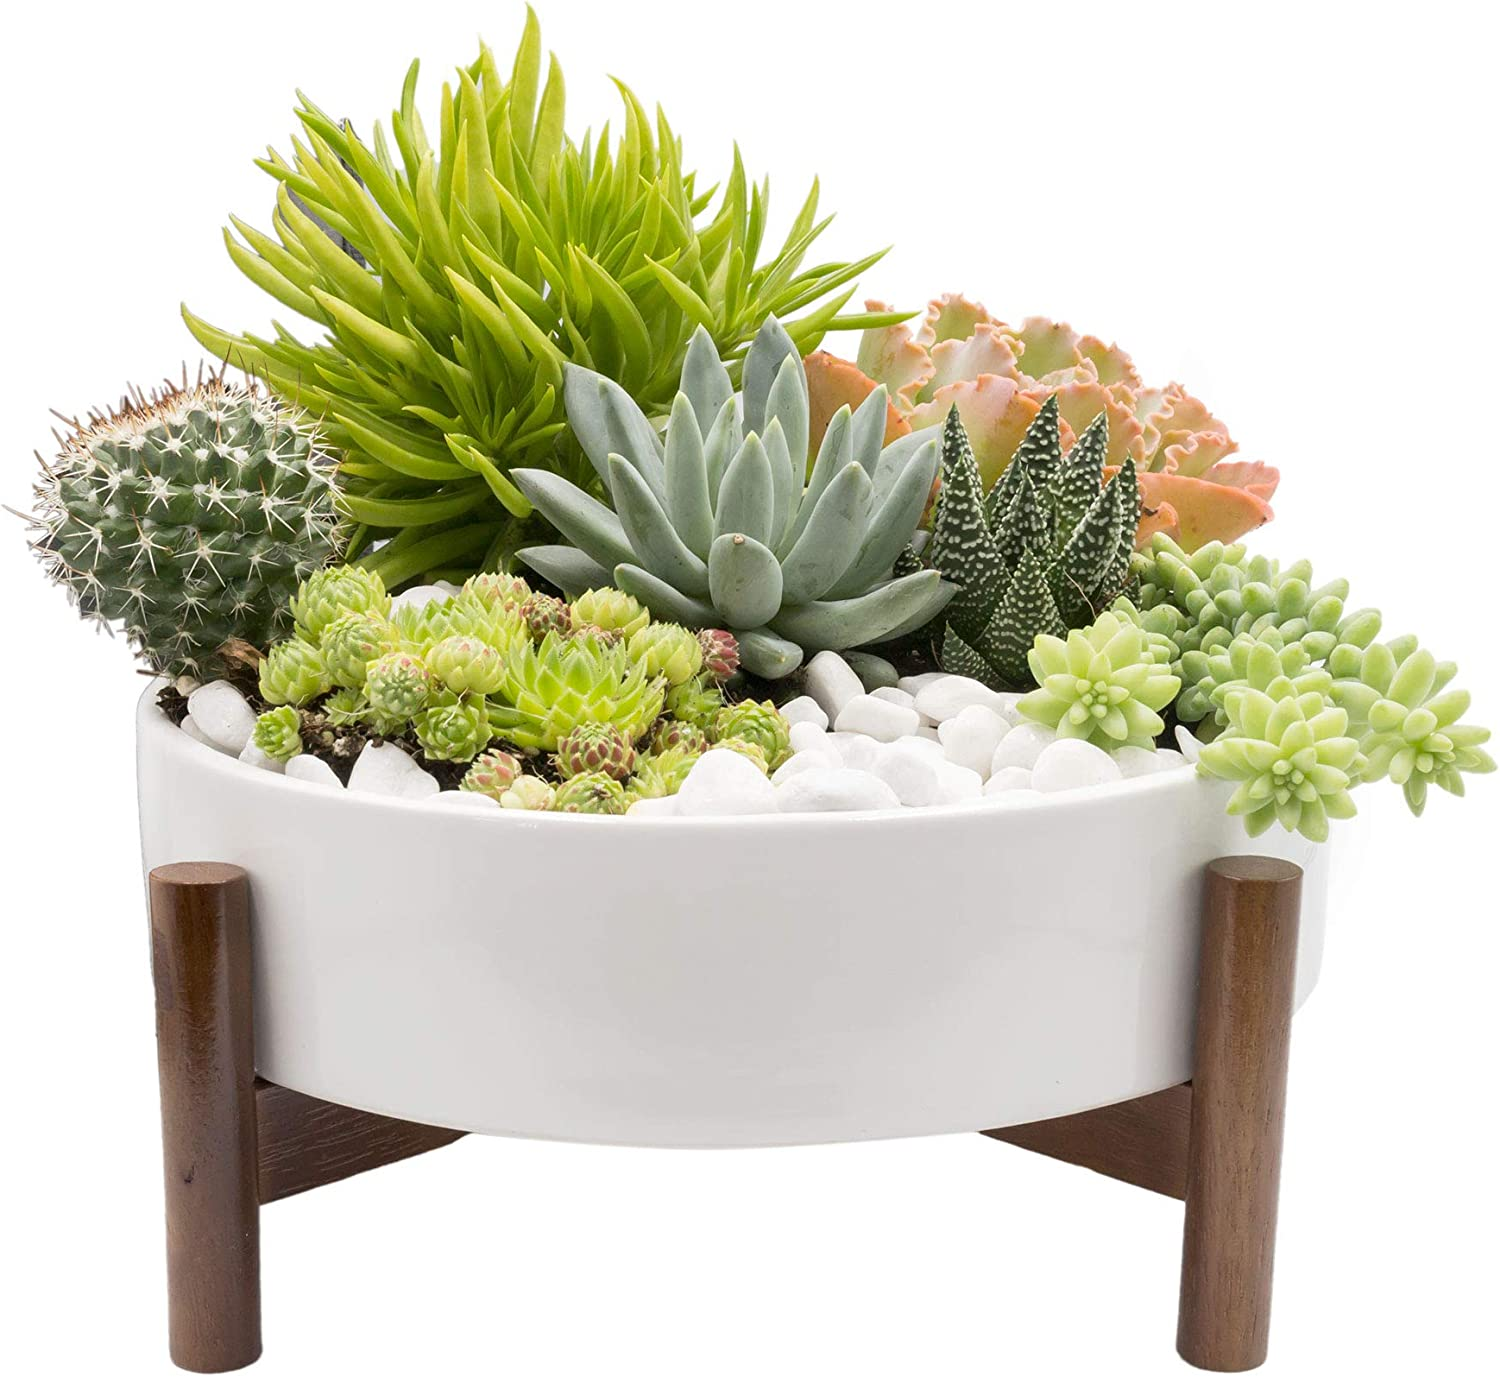 Joda 10 Inch Mid Century Round Succulent Planter With Stand Succulent Pots With Drainage Cactus Planter Dining Table Centerpiece Decorative Marble Pebbles Included Plants Not Included Kitchen Dining